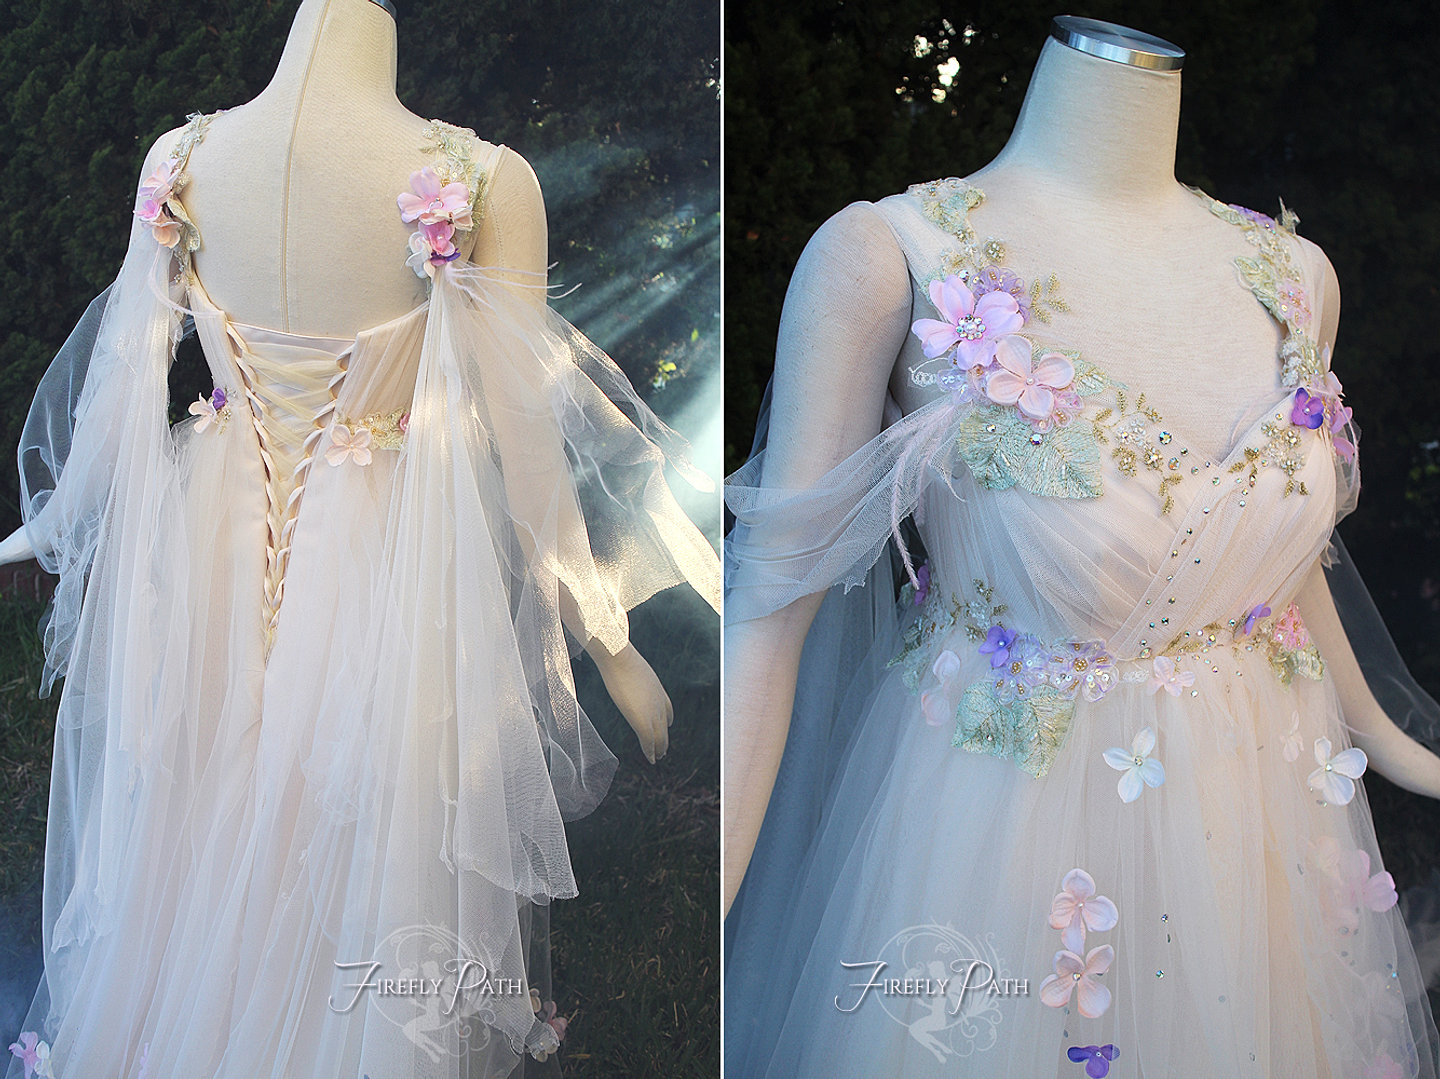 fireflypathbridal elvish wedding dress Rose Armor Gown Tsubasa Chronicles Bridal Gown Meadow Mist Gown